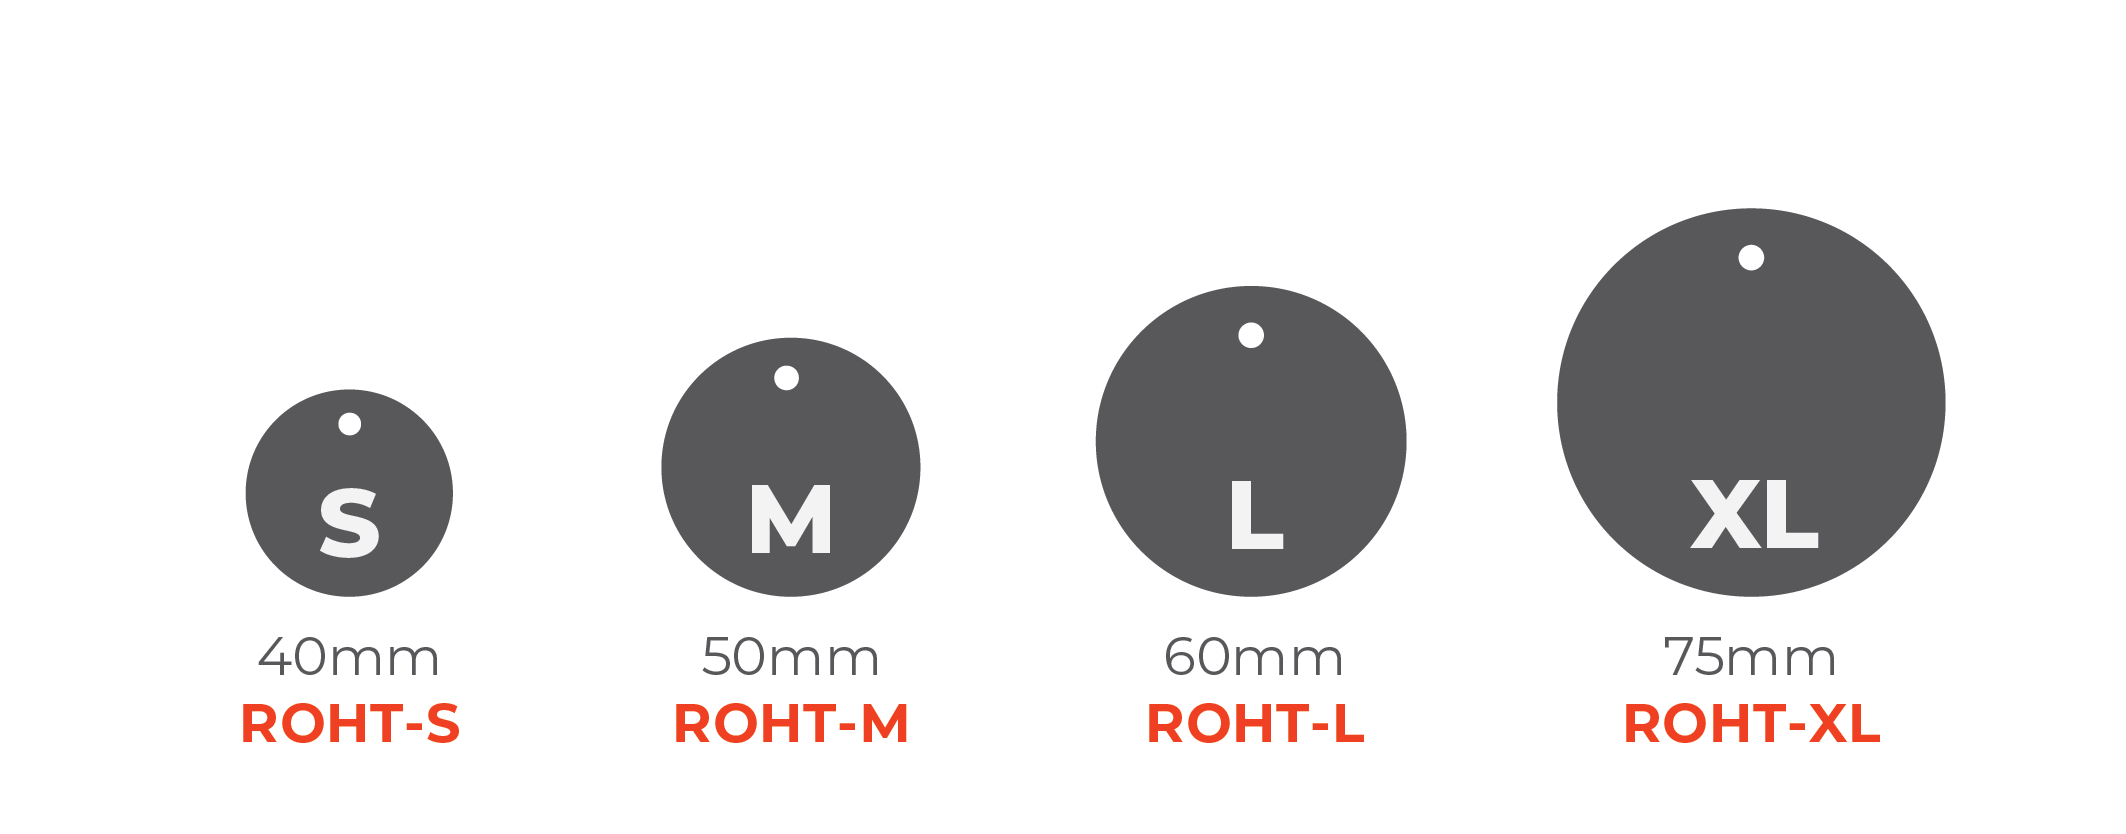 Standard Hang Tags - Round Tags 0x0mm 01 Image